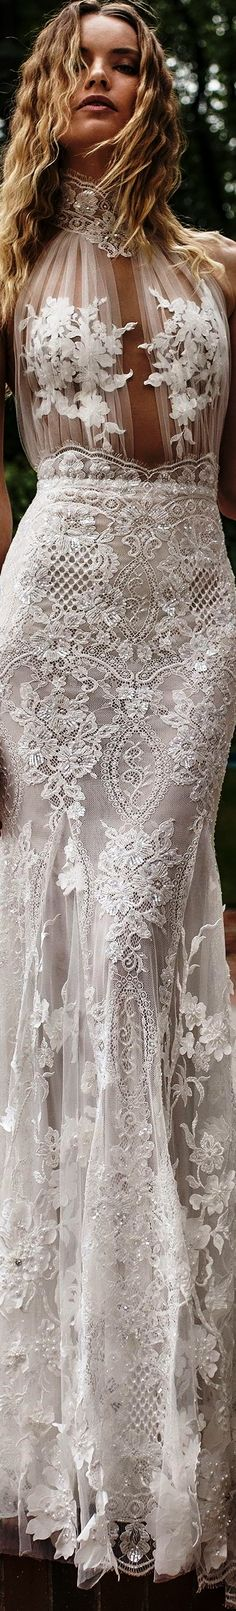 e60596aa82 Lian Rokman 2018 bridal halter high neck full embellishment glamorous sexy  elegant fit and flare sheath wedding dress keyhole back sweep train Yoga  for ...